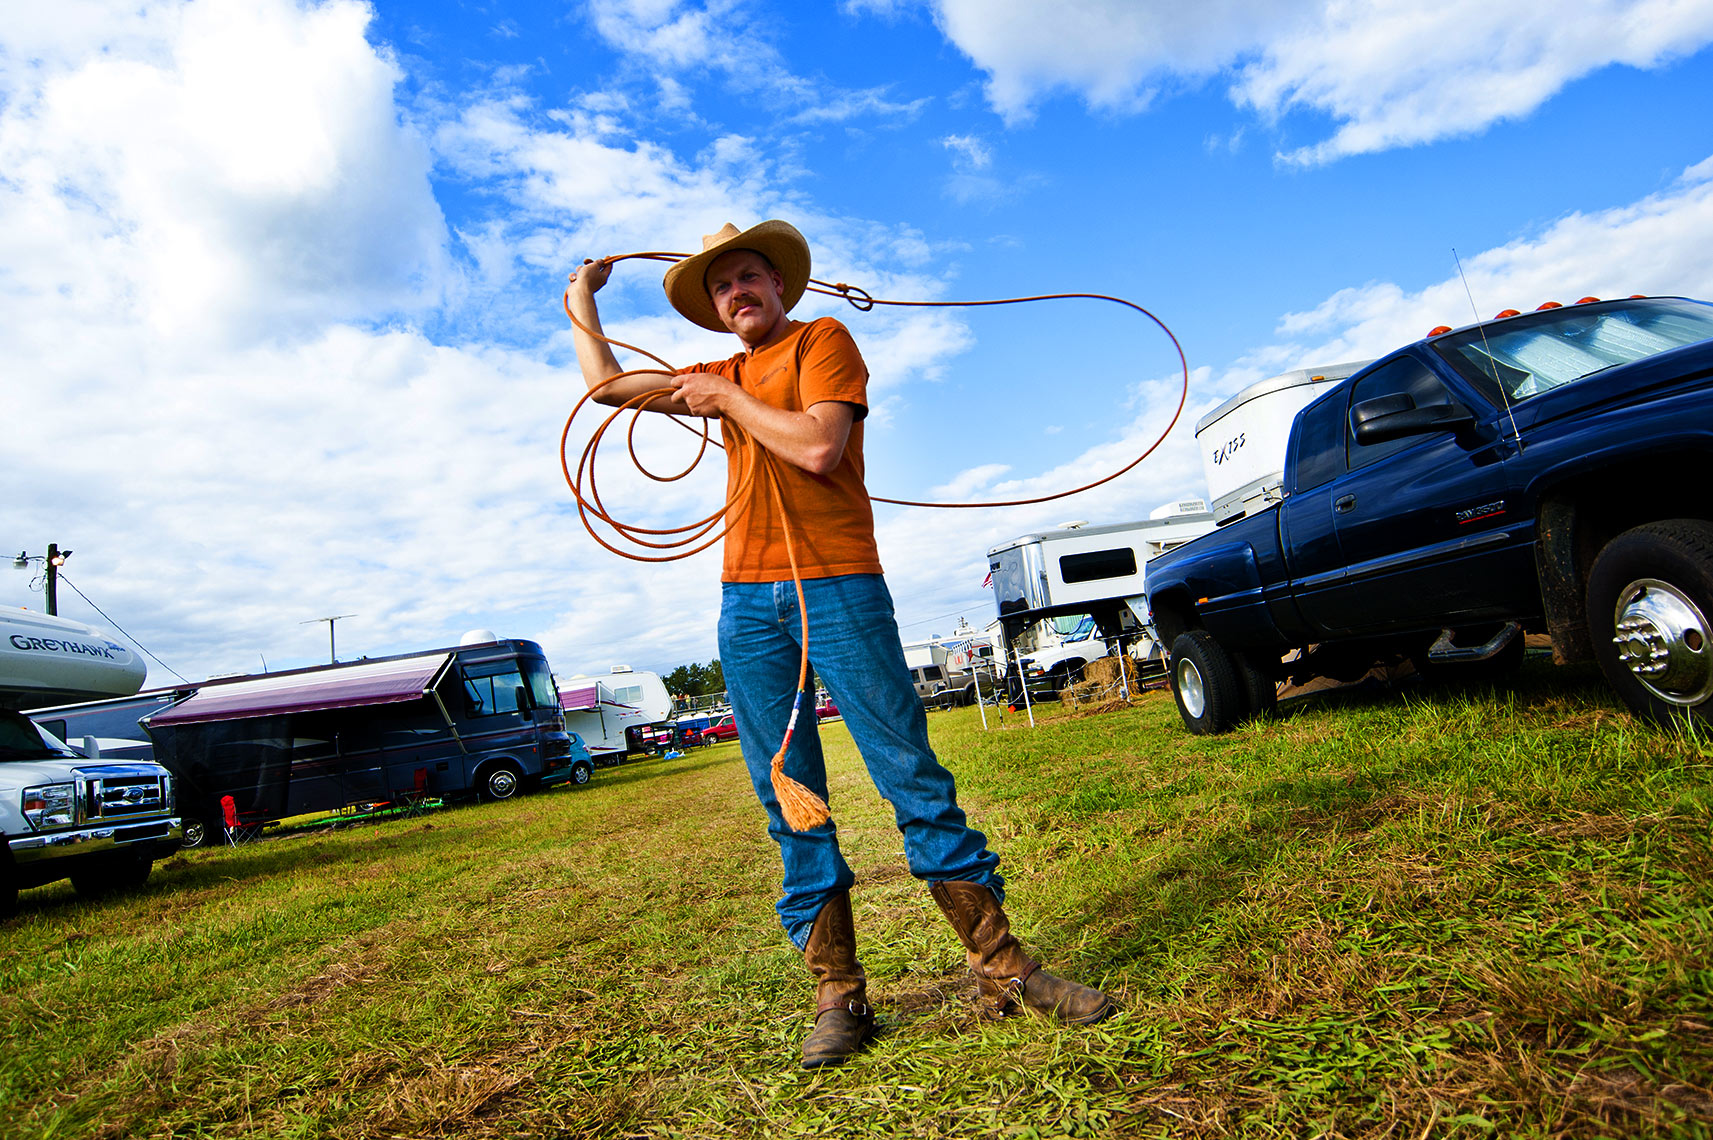 Raleigh portrait photography Bryan Regan cowboy and lasso